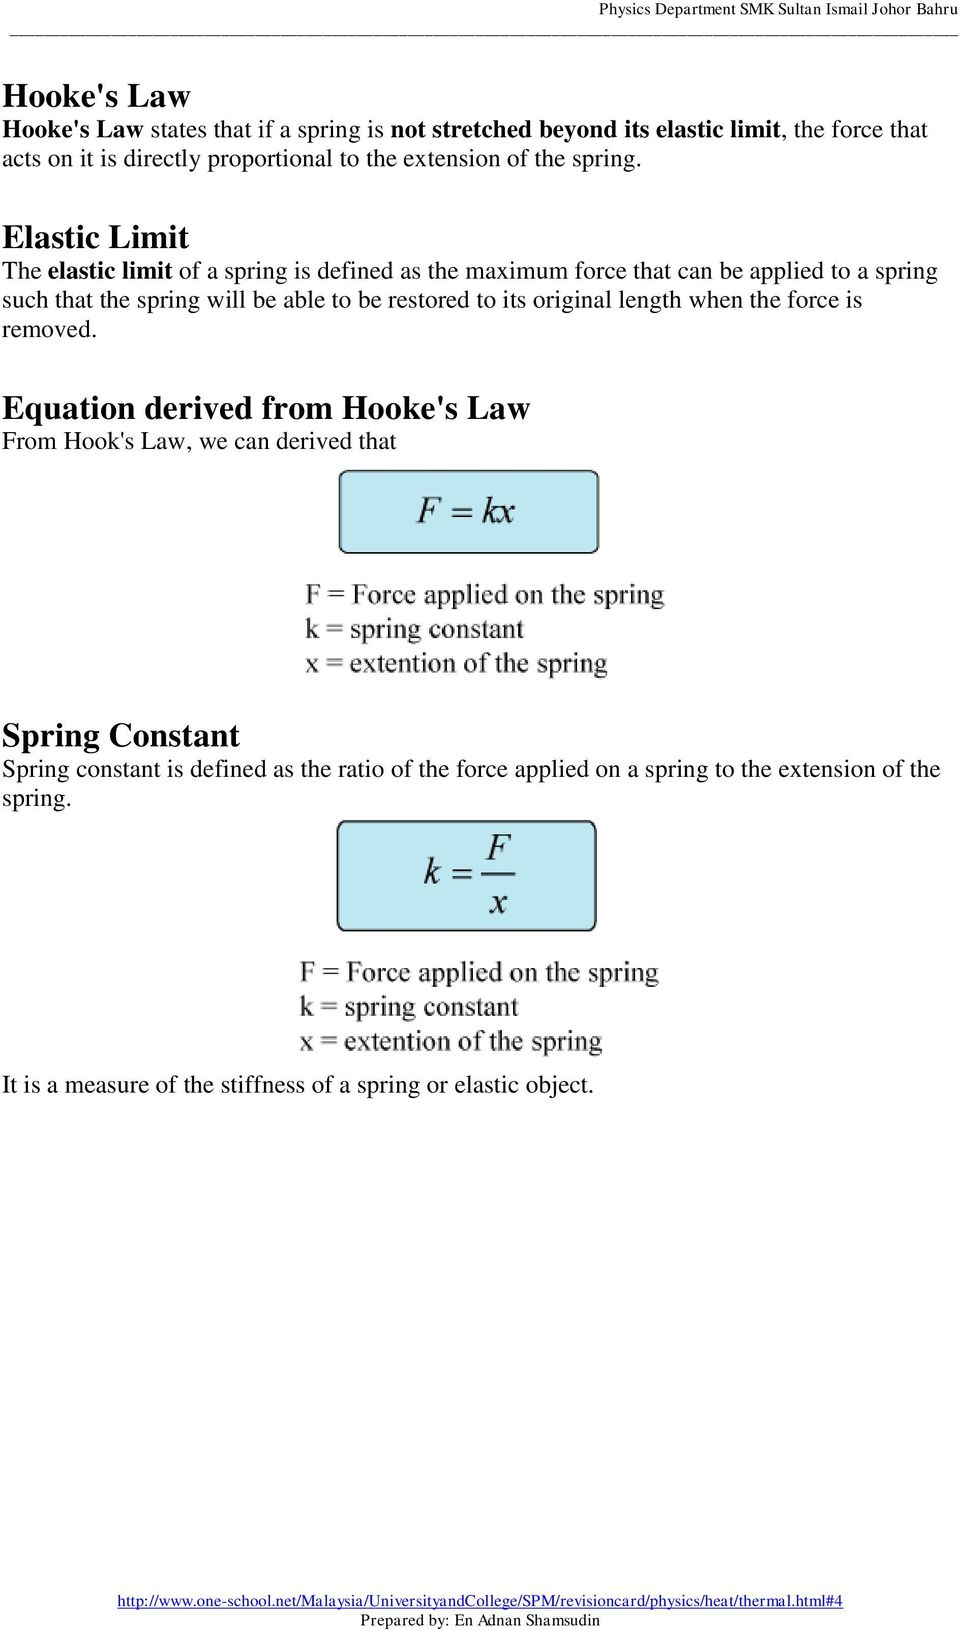 Elastic Limit The elastic limit of a spring is defined as the maximum force that can be applied to a spring such that the spring will be able to be restored